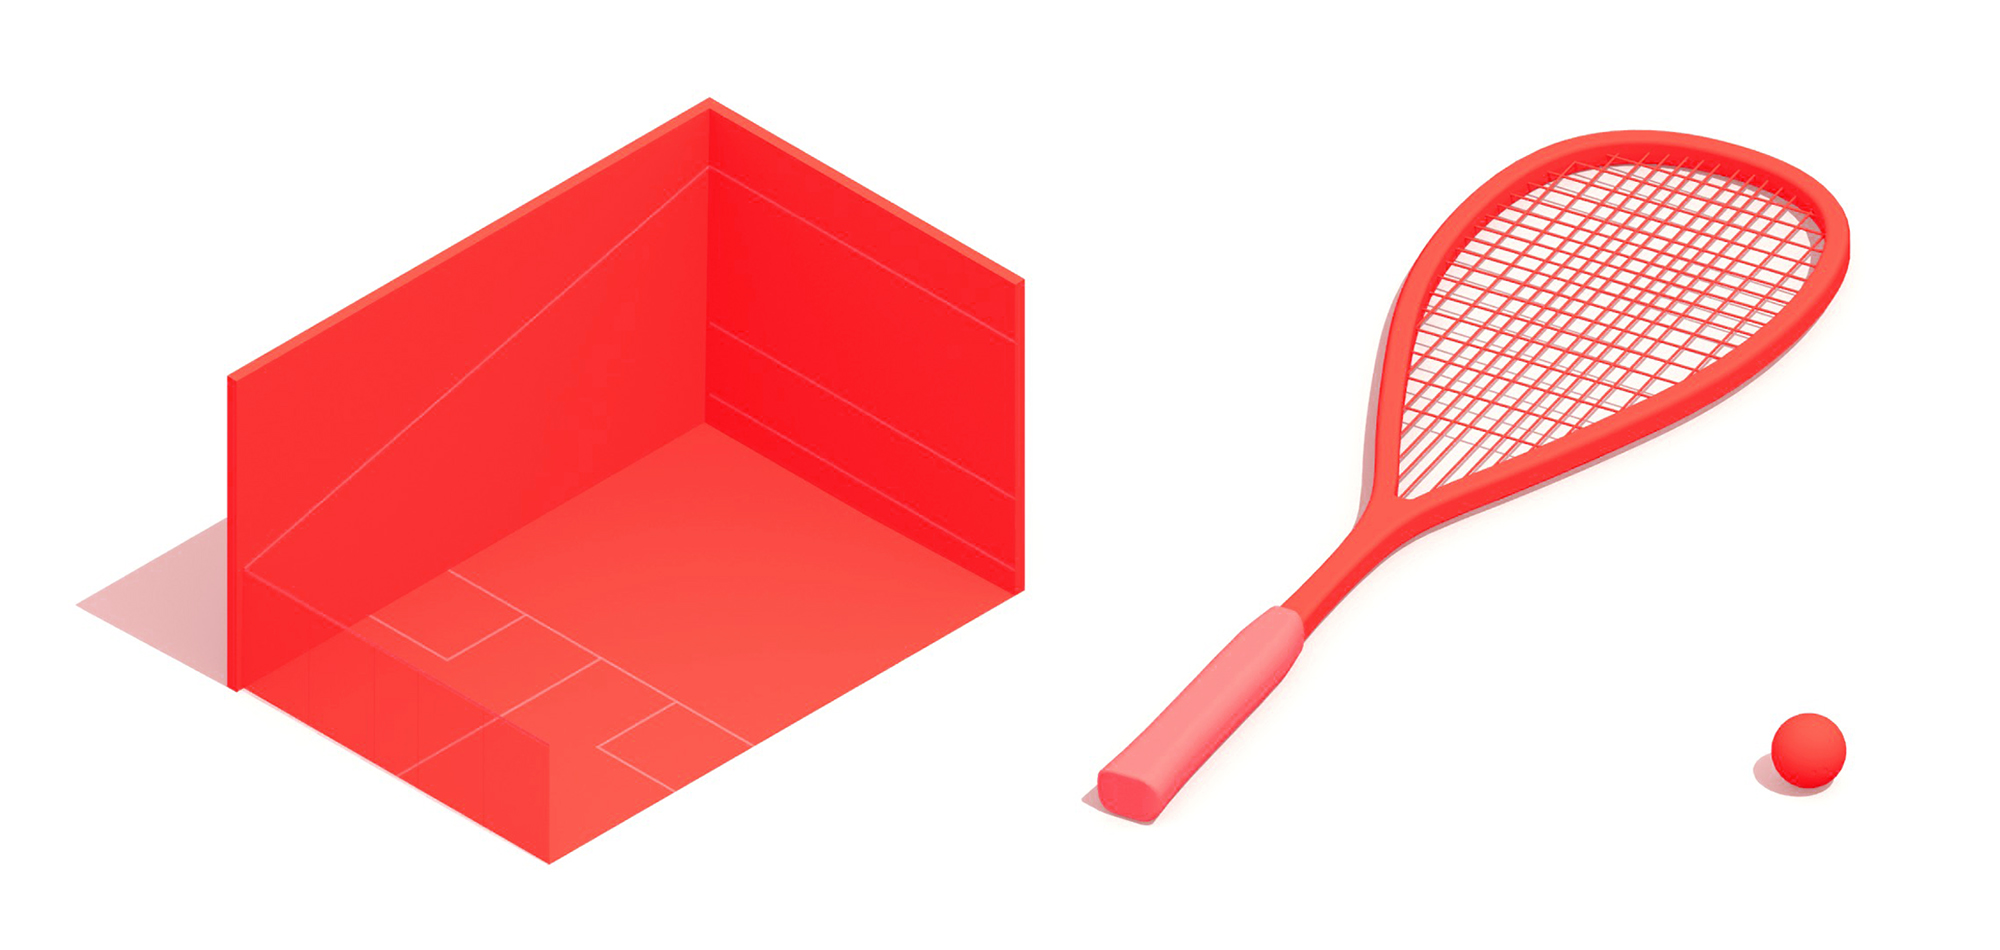 3D Collection of various elements of the sport of Squash including the Squash court, squash racket, and squash ball